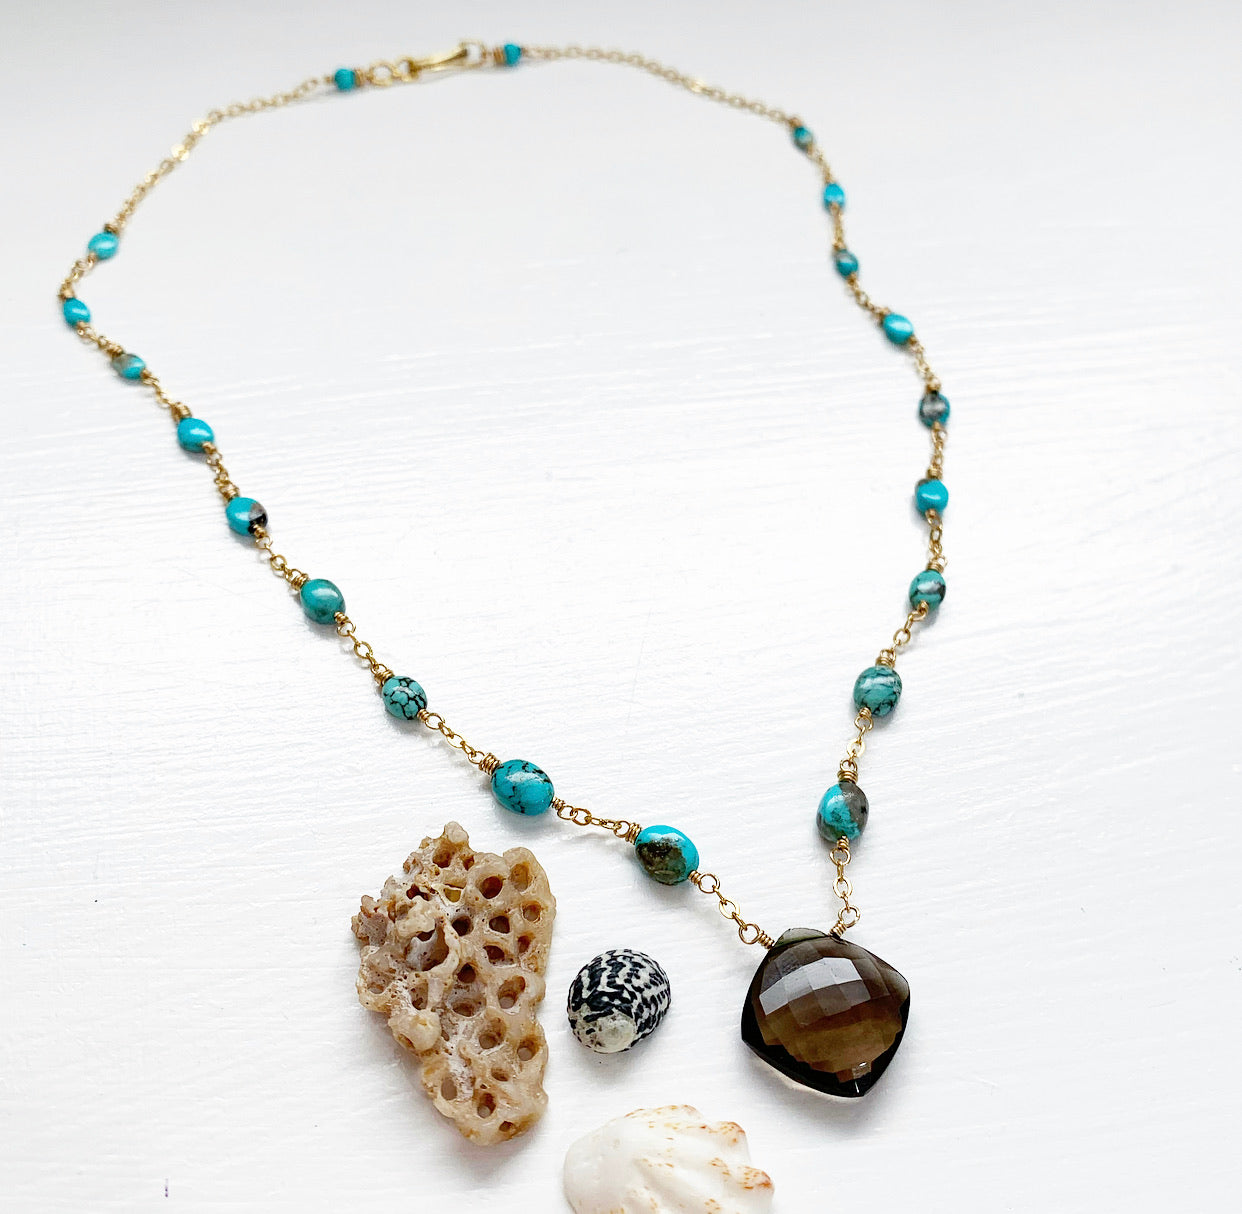 842-Gemstone Layering Necklace